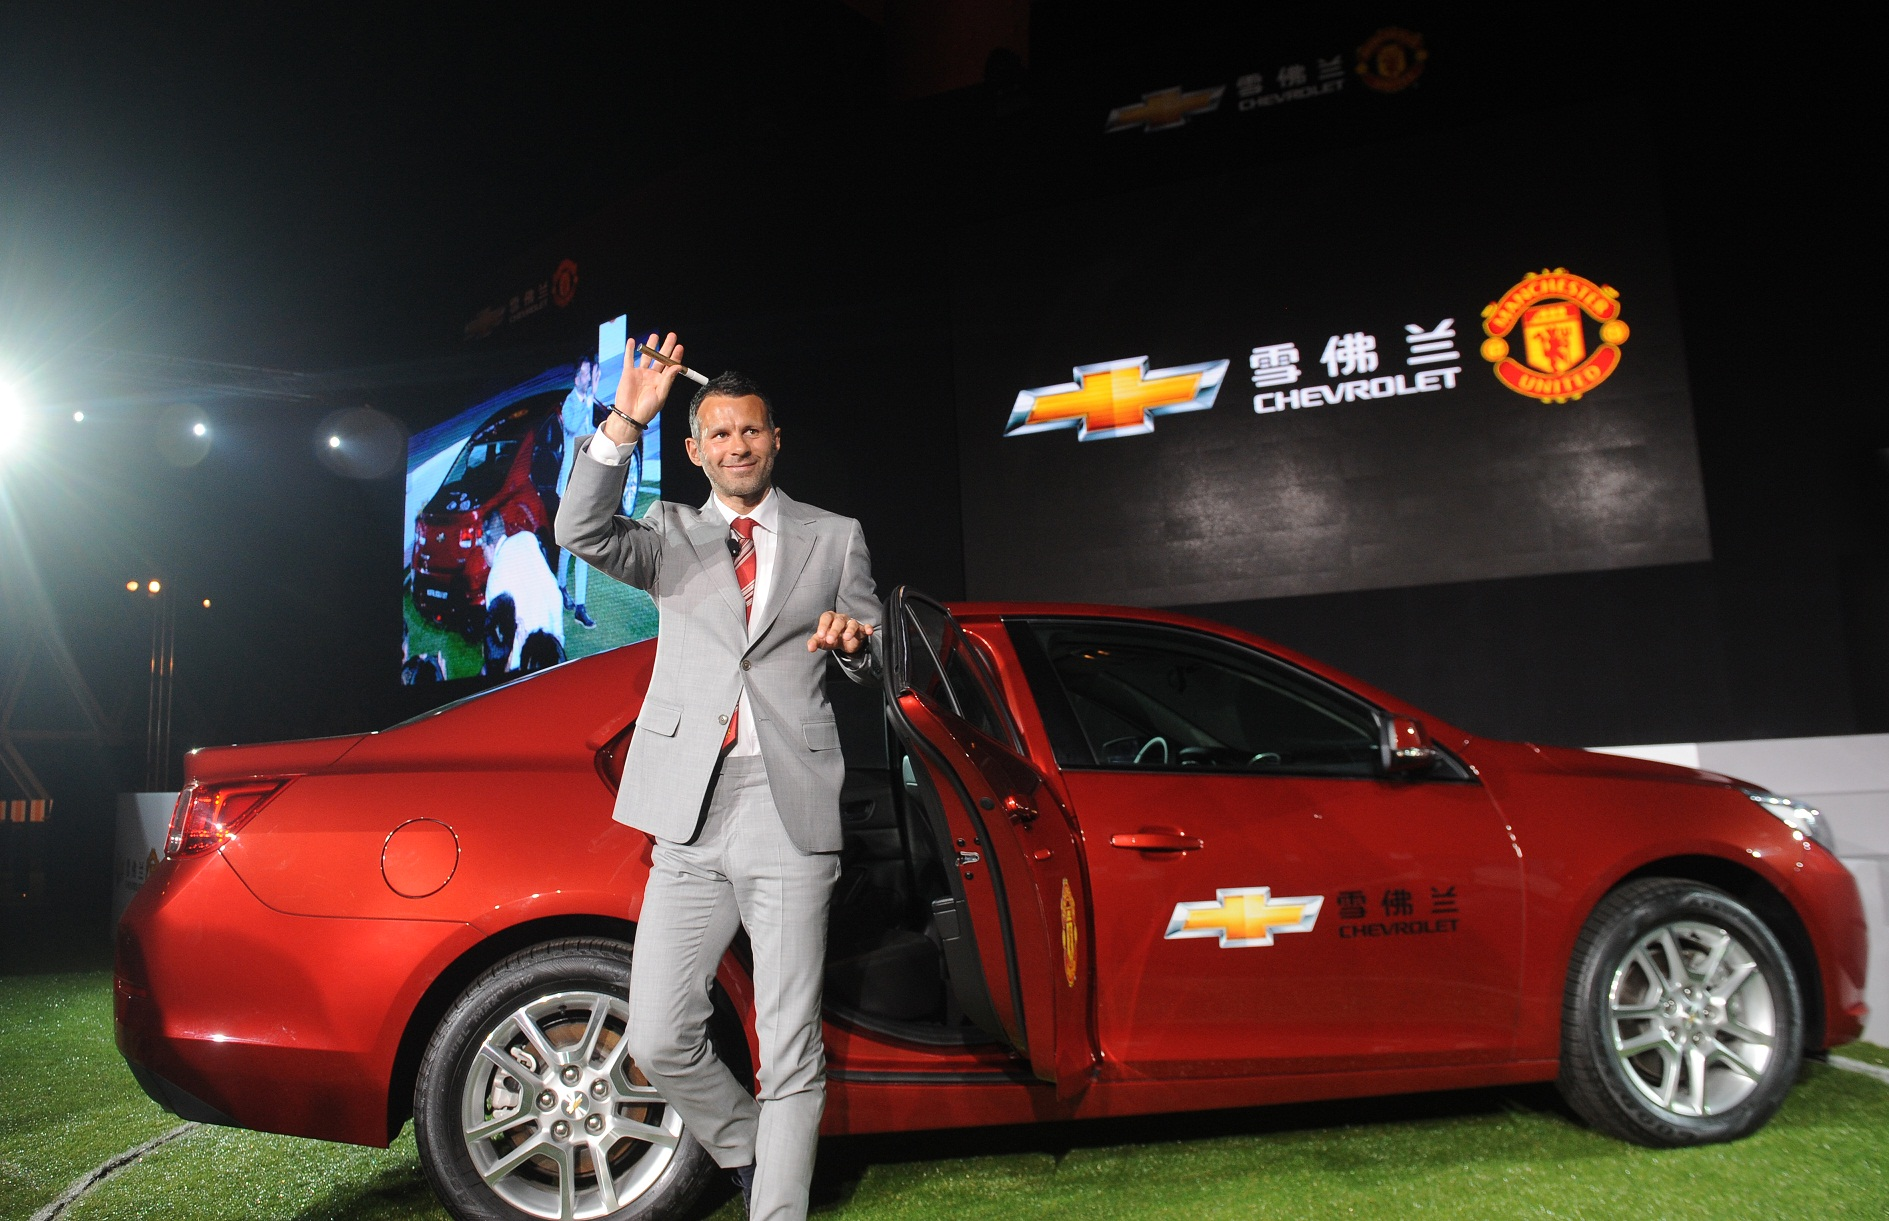 chevrolet becomes official automotive partner of manchester united will support chevrolet china cup in july gm media general motors